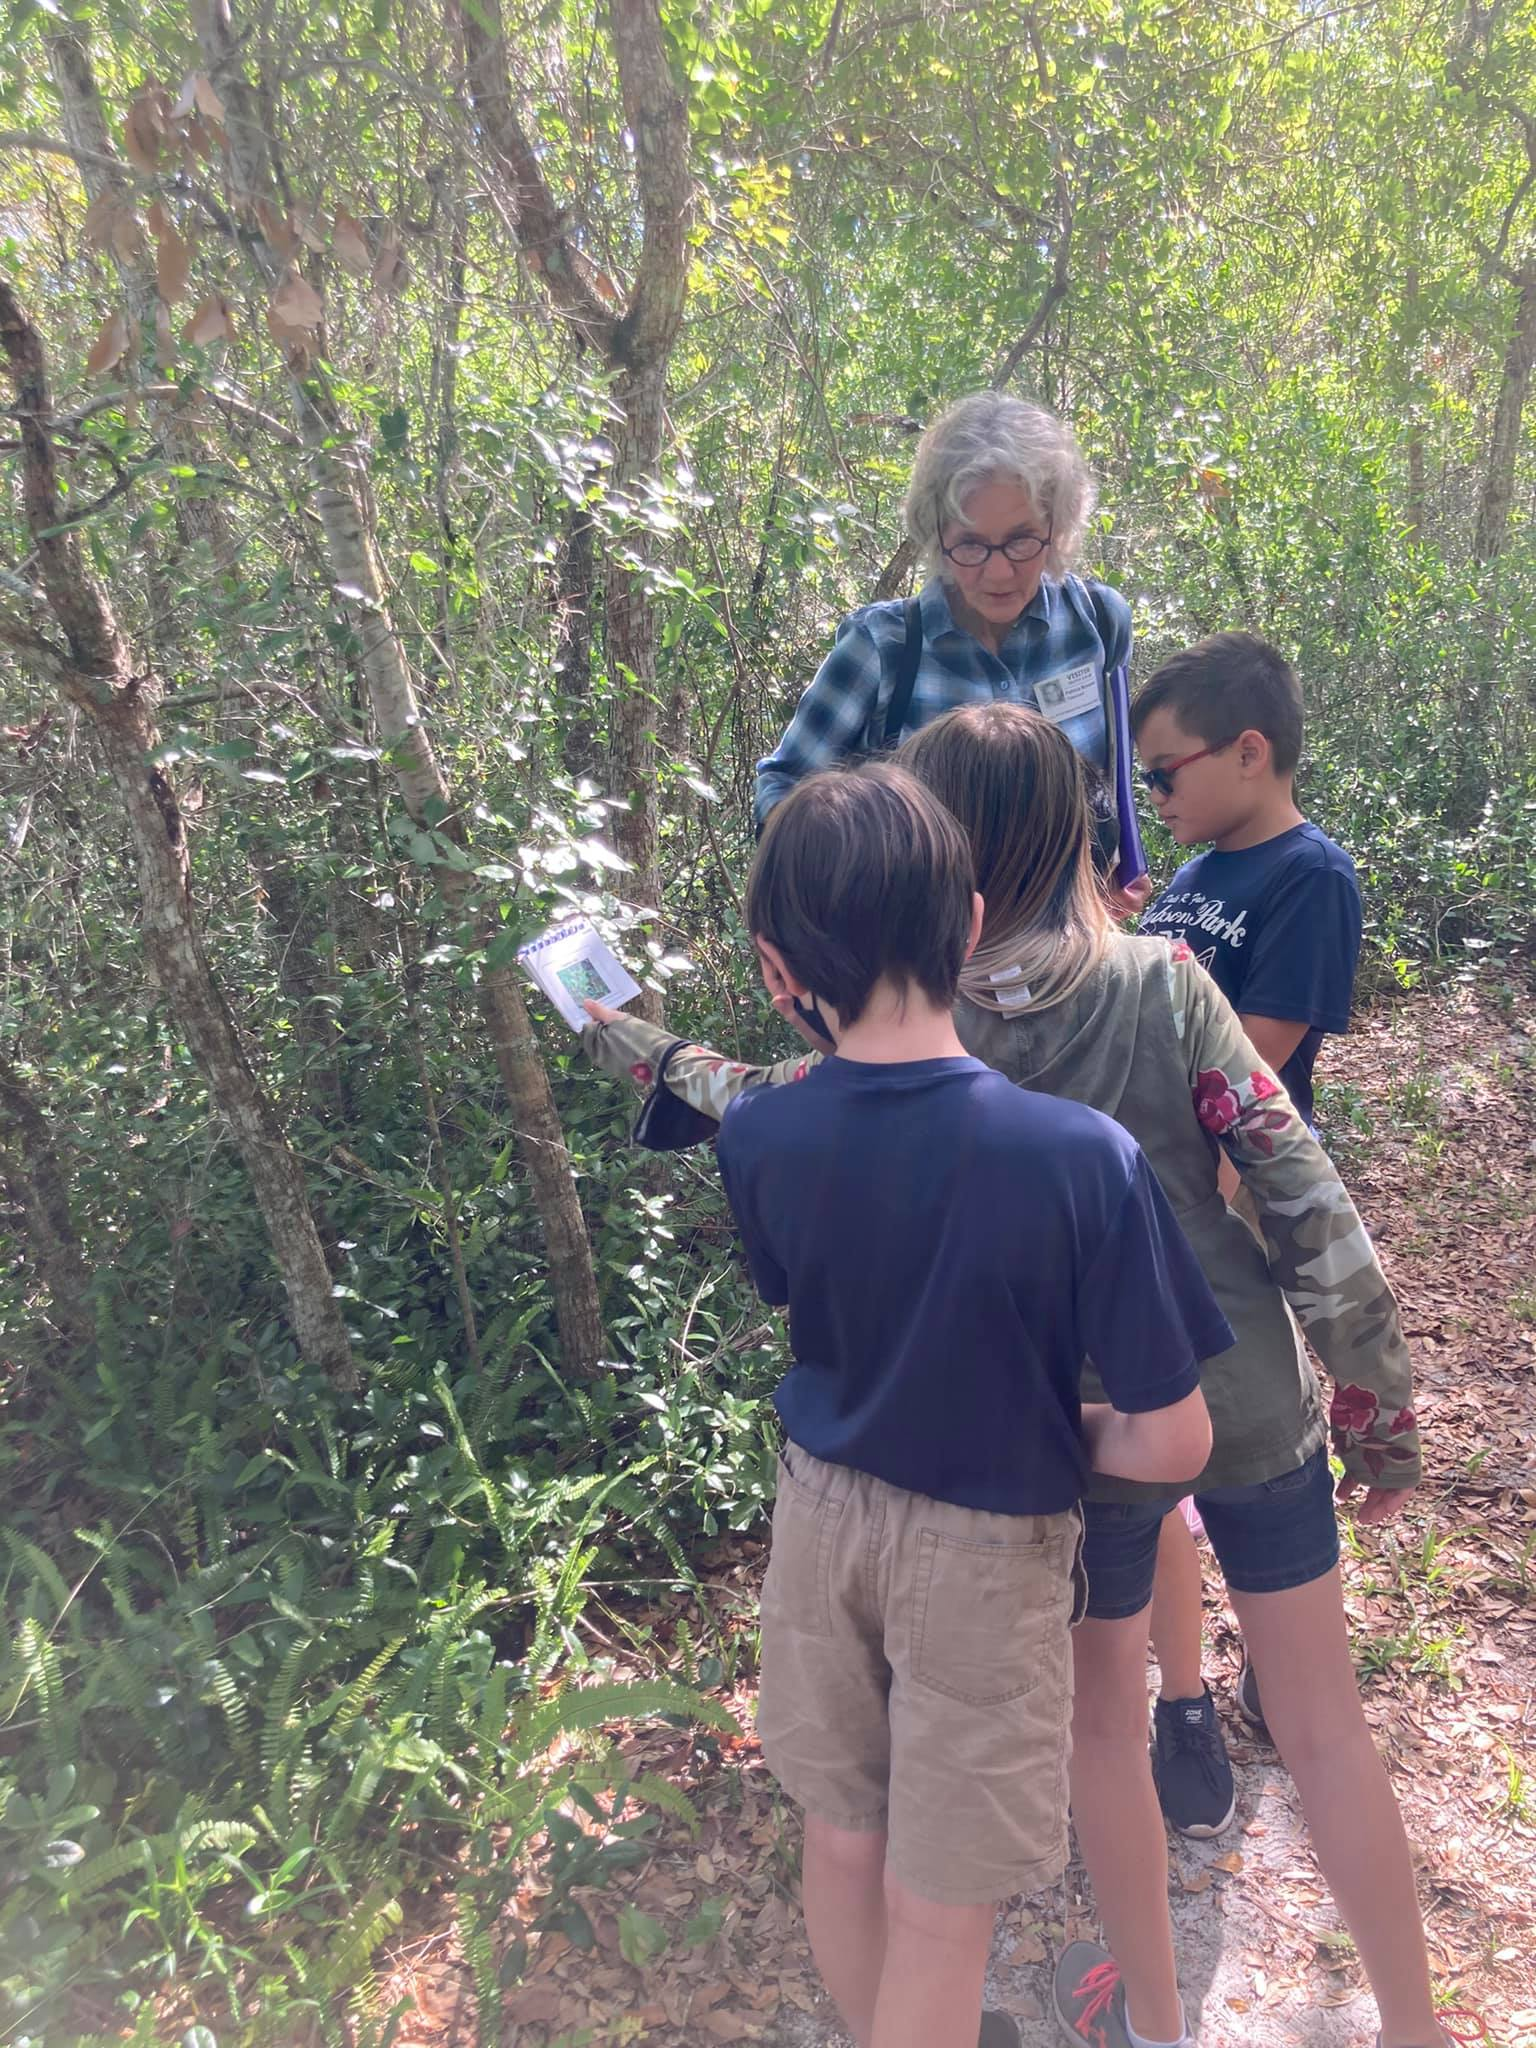 Students learning information from their trail guide.